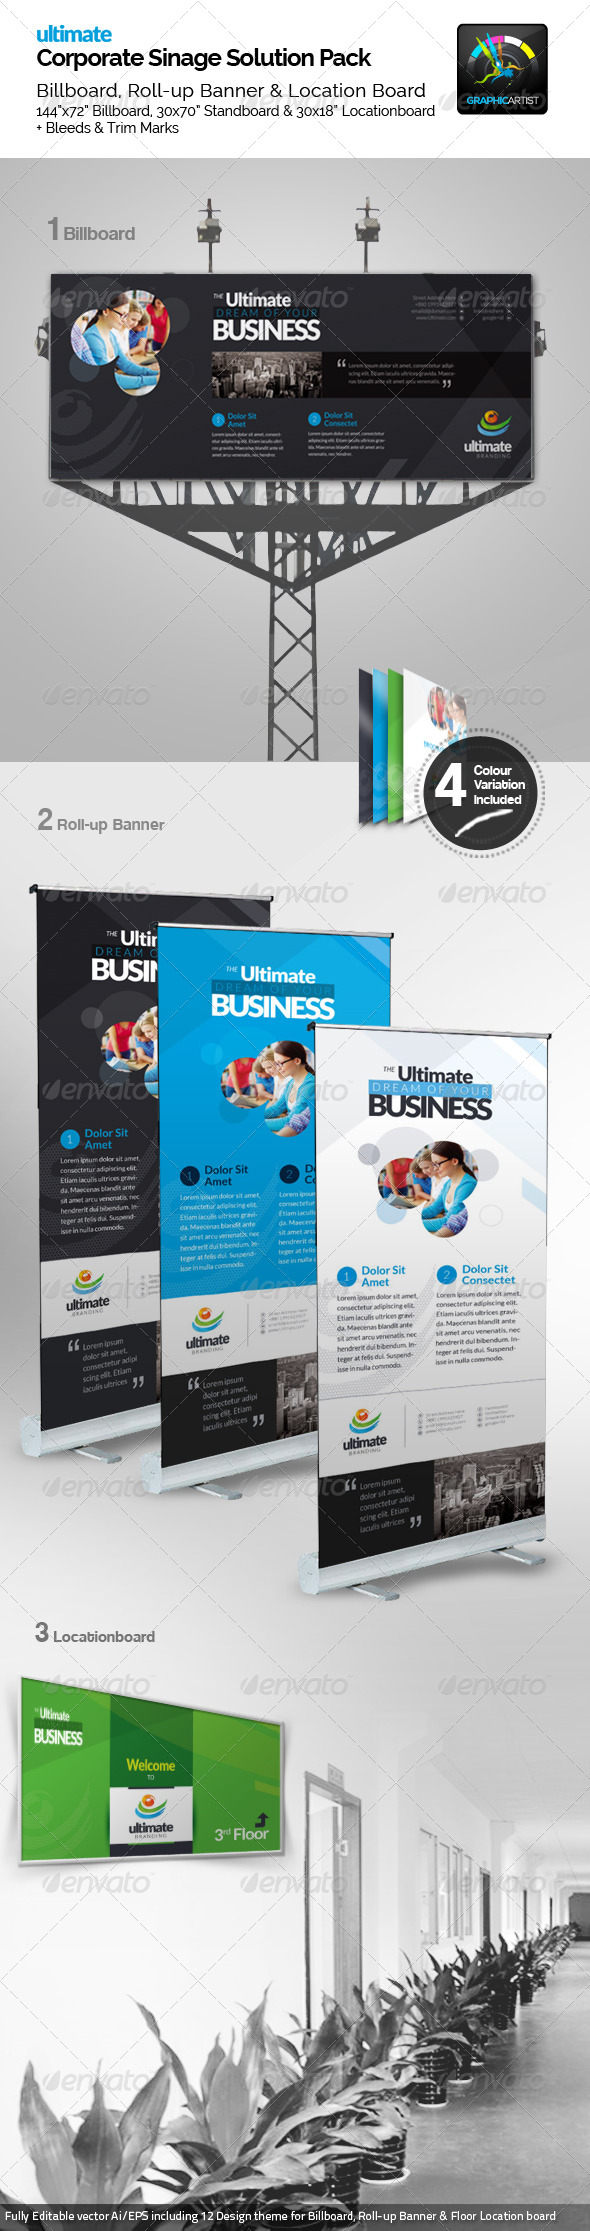 GraphicRiver Ultimate Corporate Signage Pack 6584047